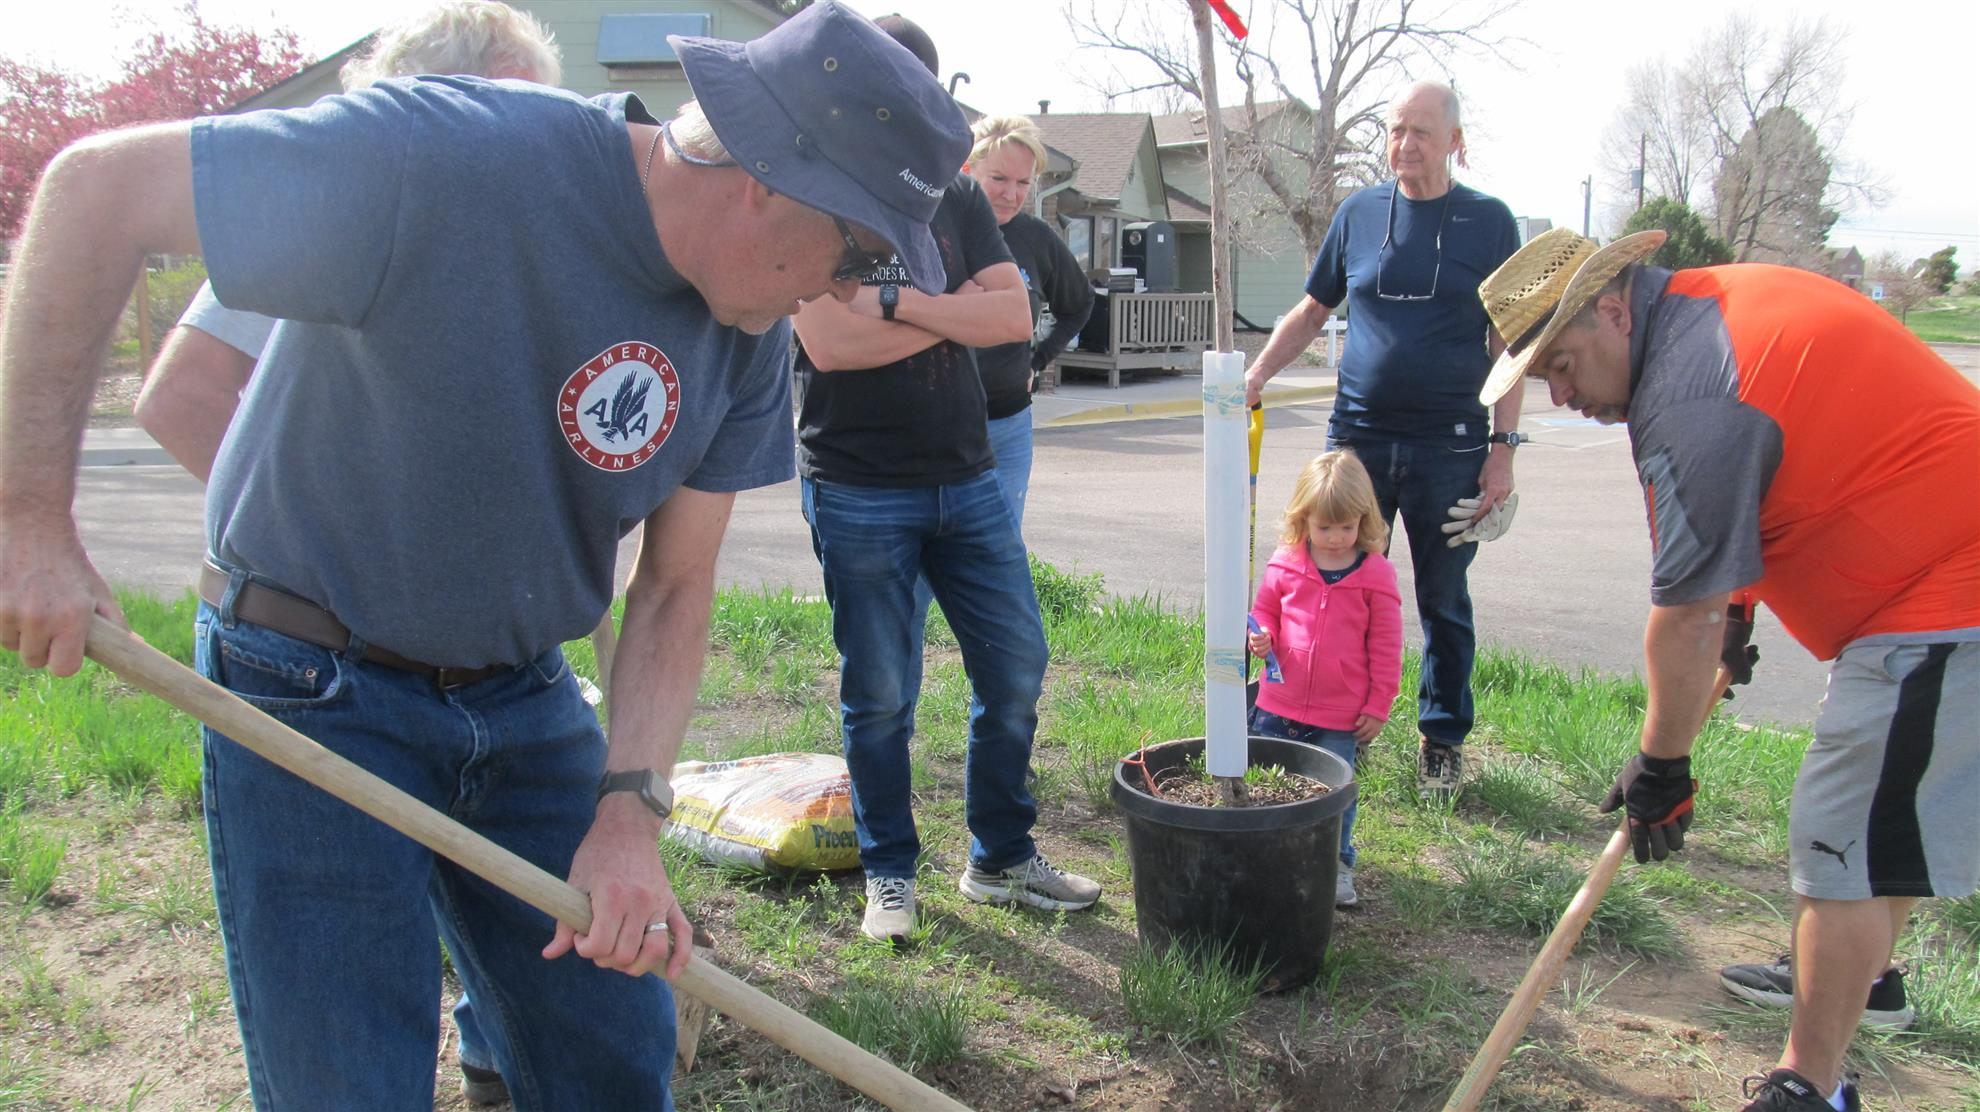 Rotarians at Work on Rotary District 5450 Service Day